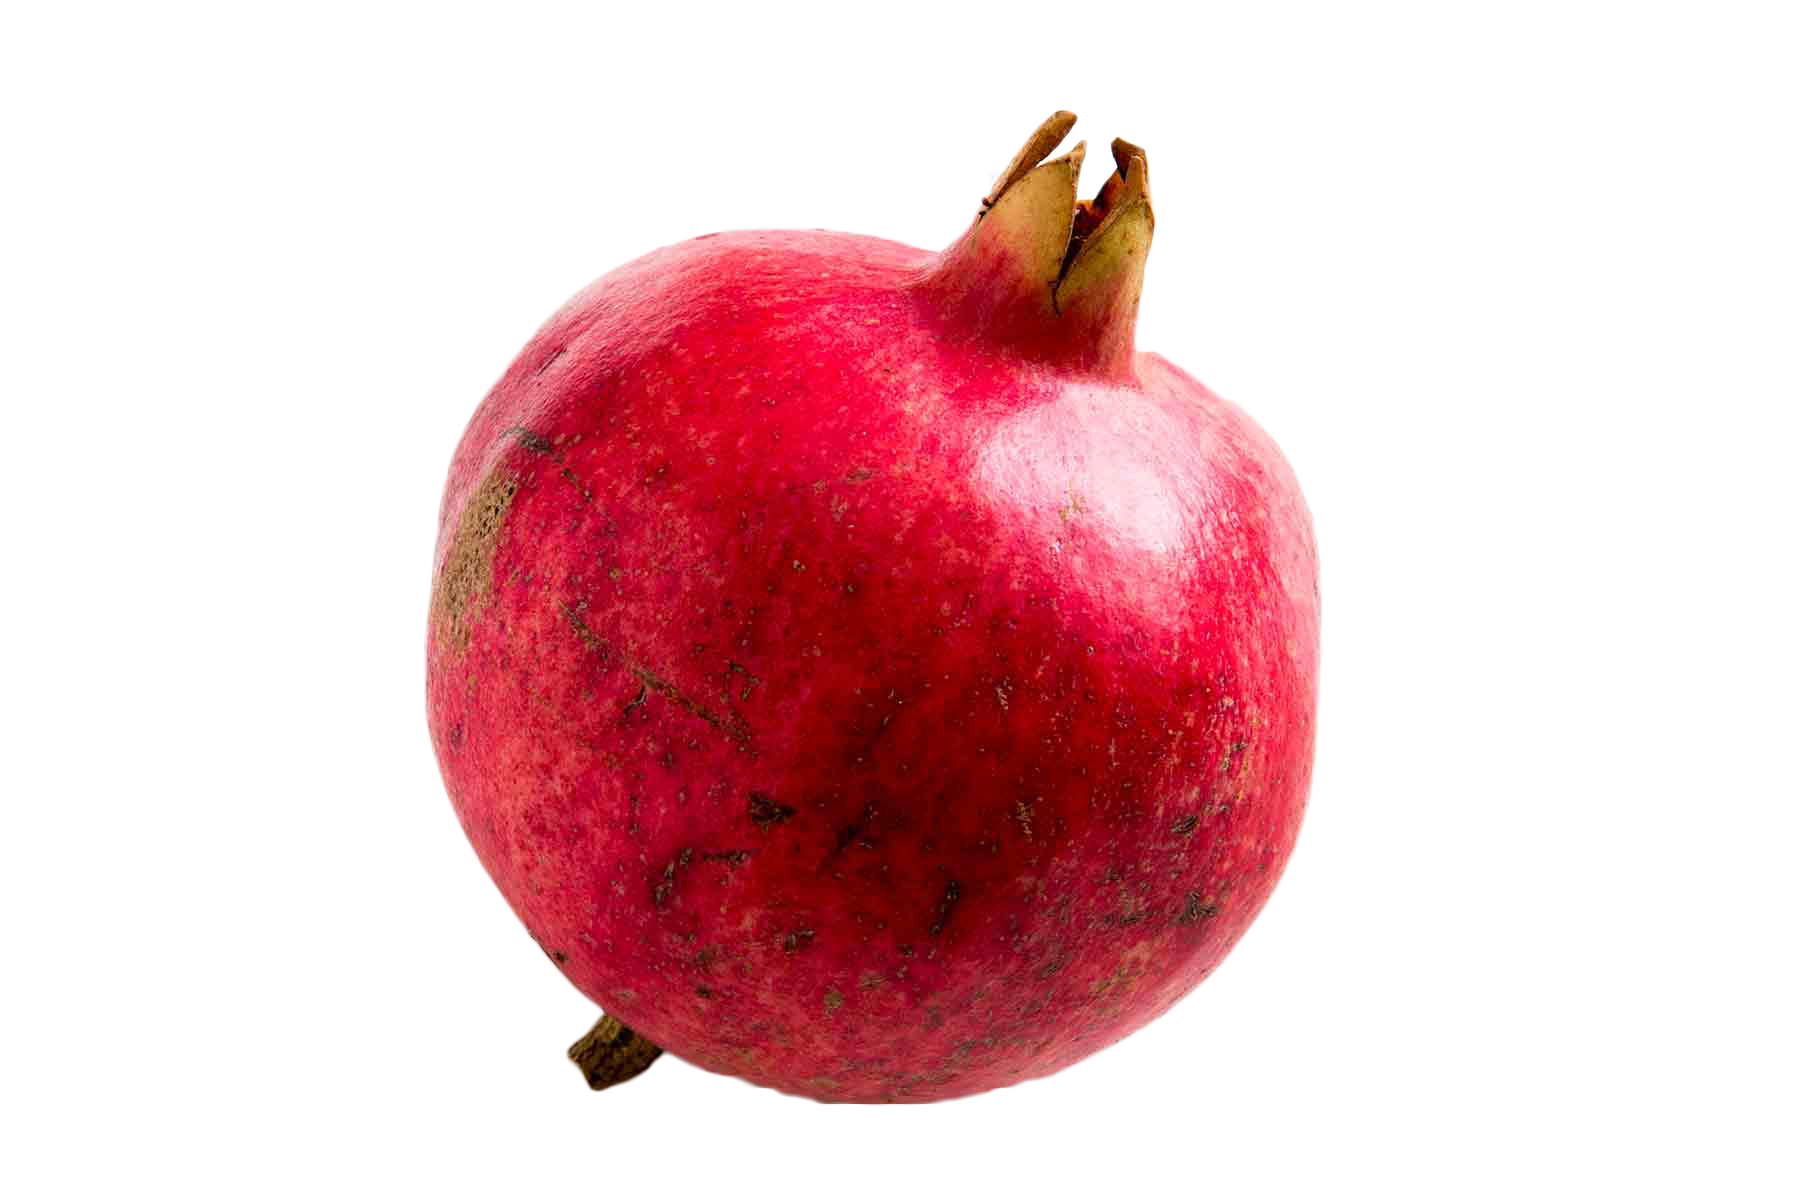 Clipart fruit pomegranate. Png image purepng free